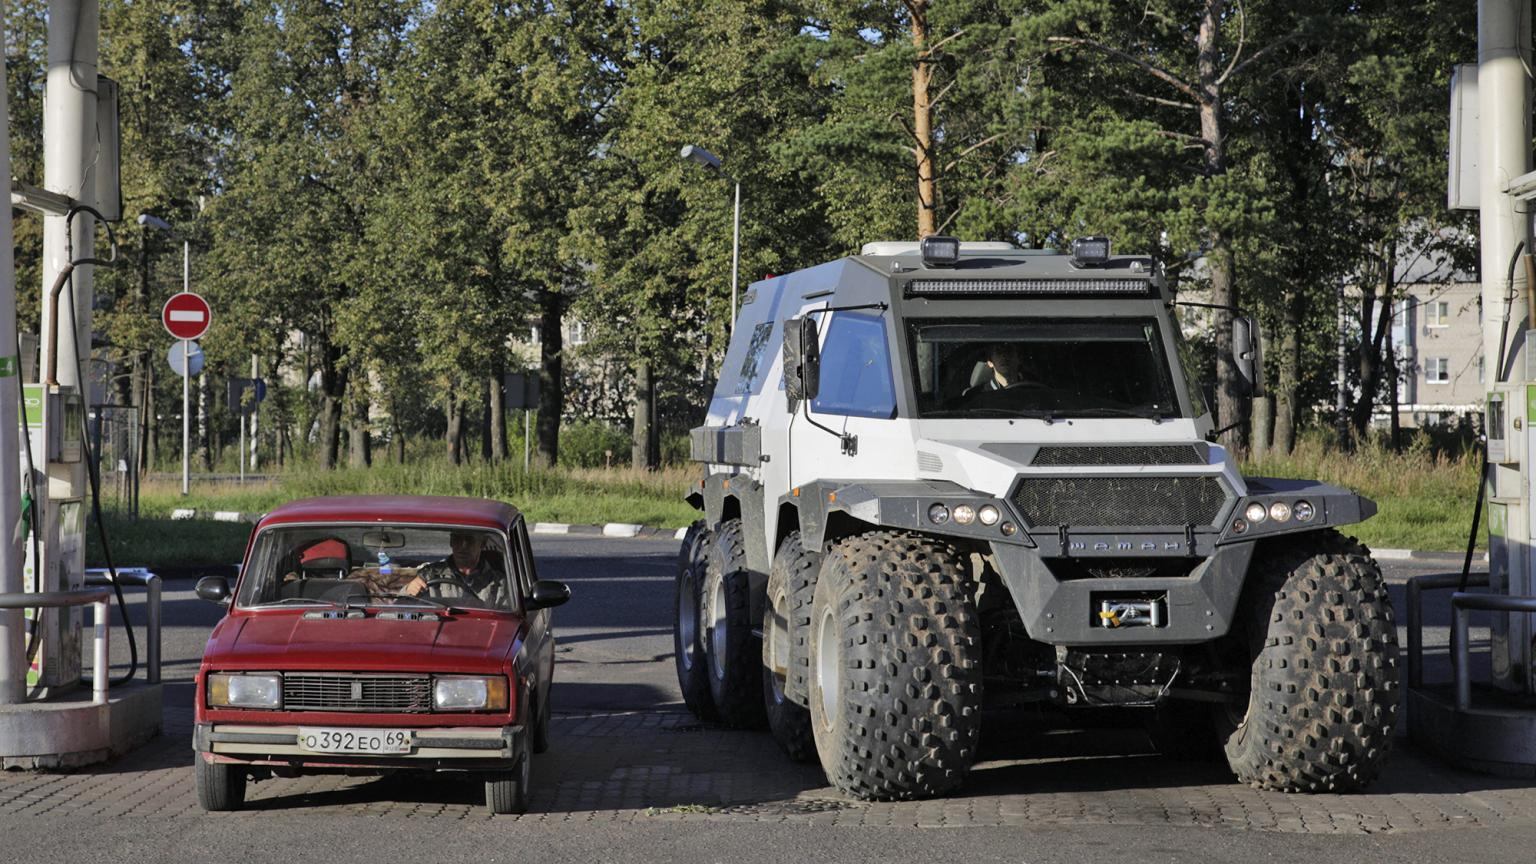 Russian Off Road Vehicles That You Haven't Heard Of - shaman